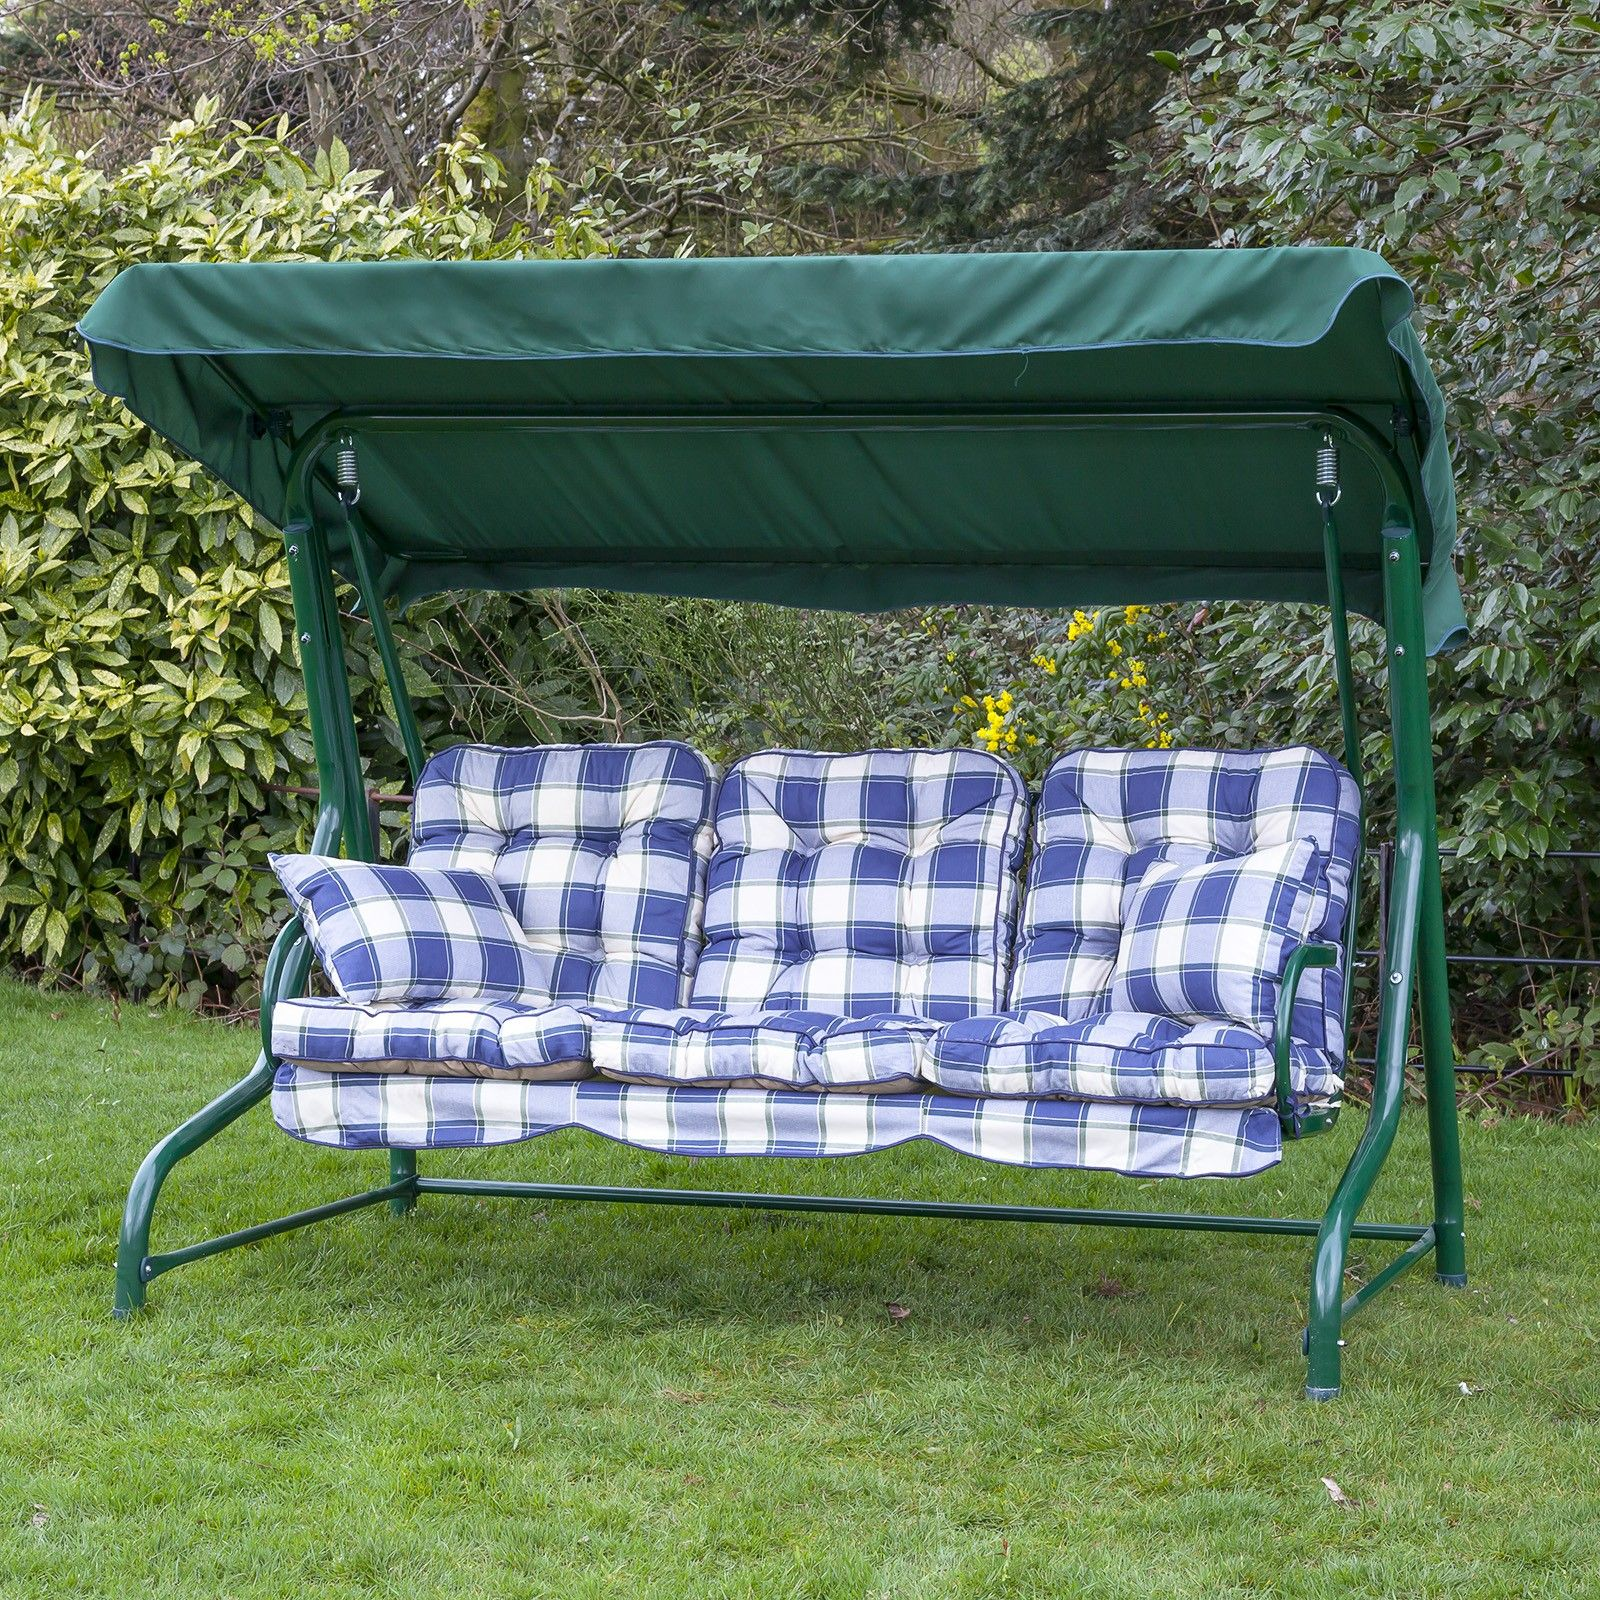 Luxury Traditional Garden Swing Seat Cushions 3 Seater